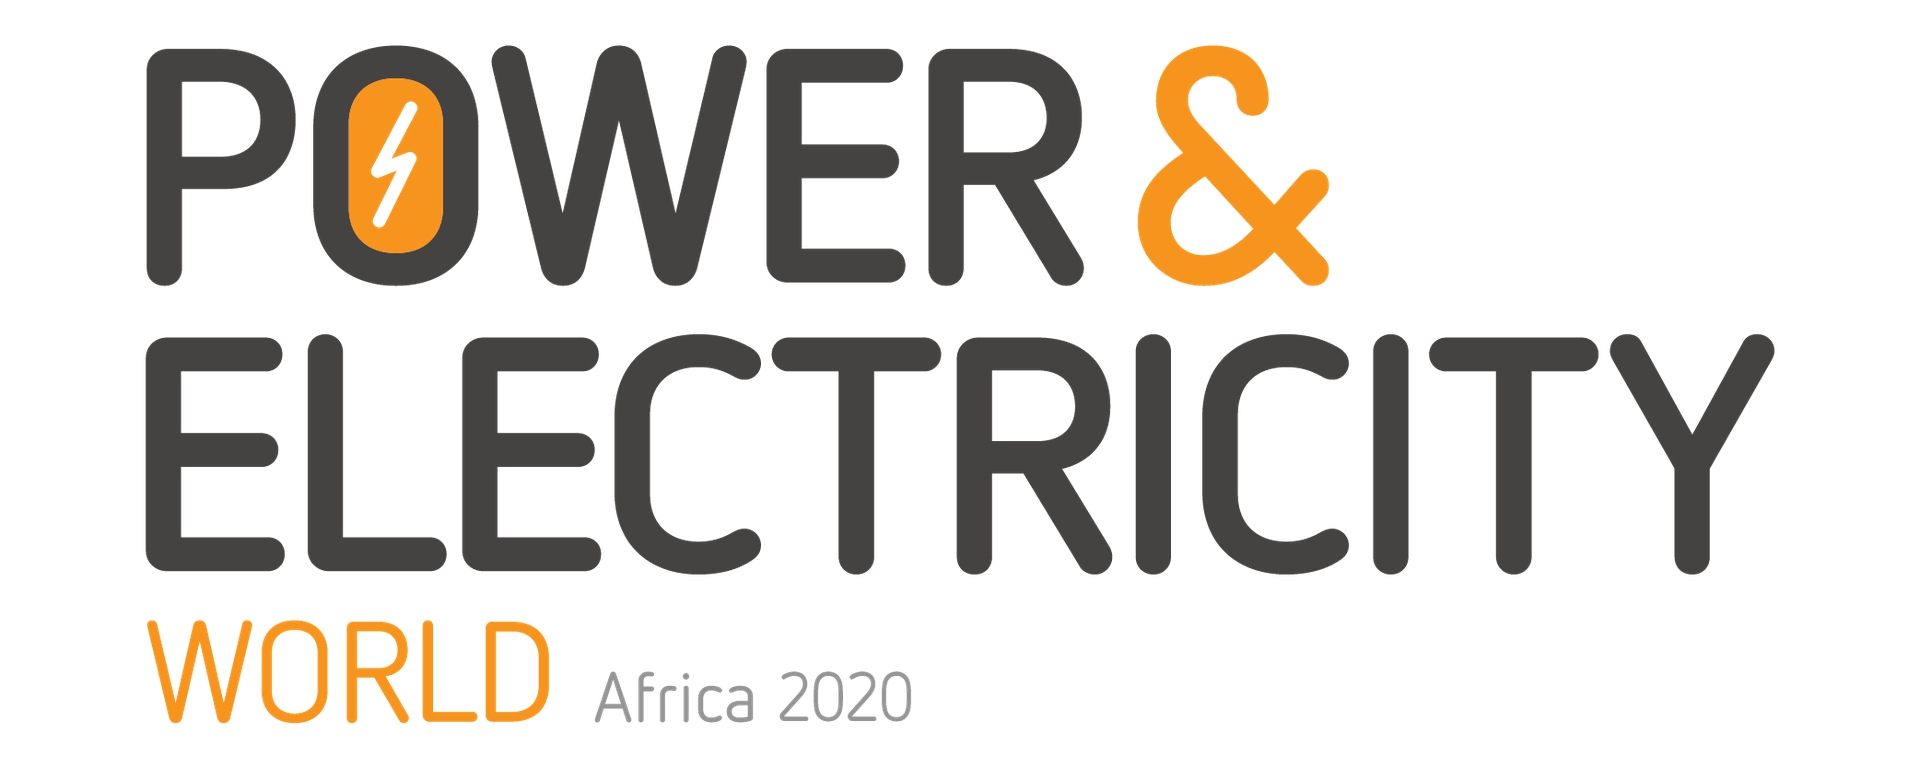 Terrapinn - The Power & Electricity World Africa 2020 Movemeback African event cover image